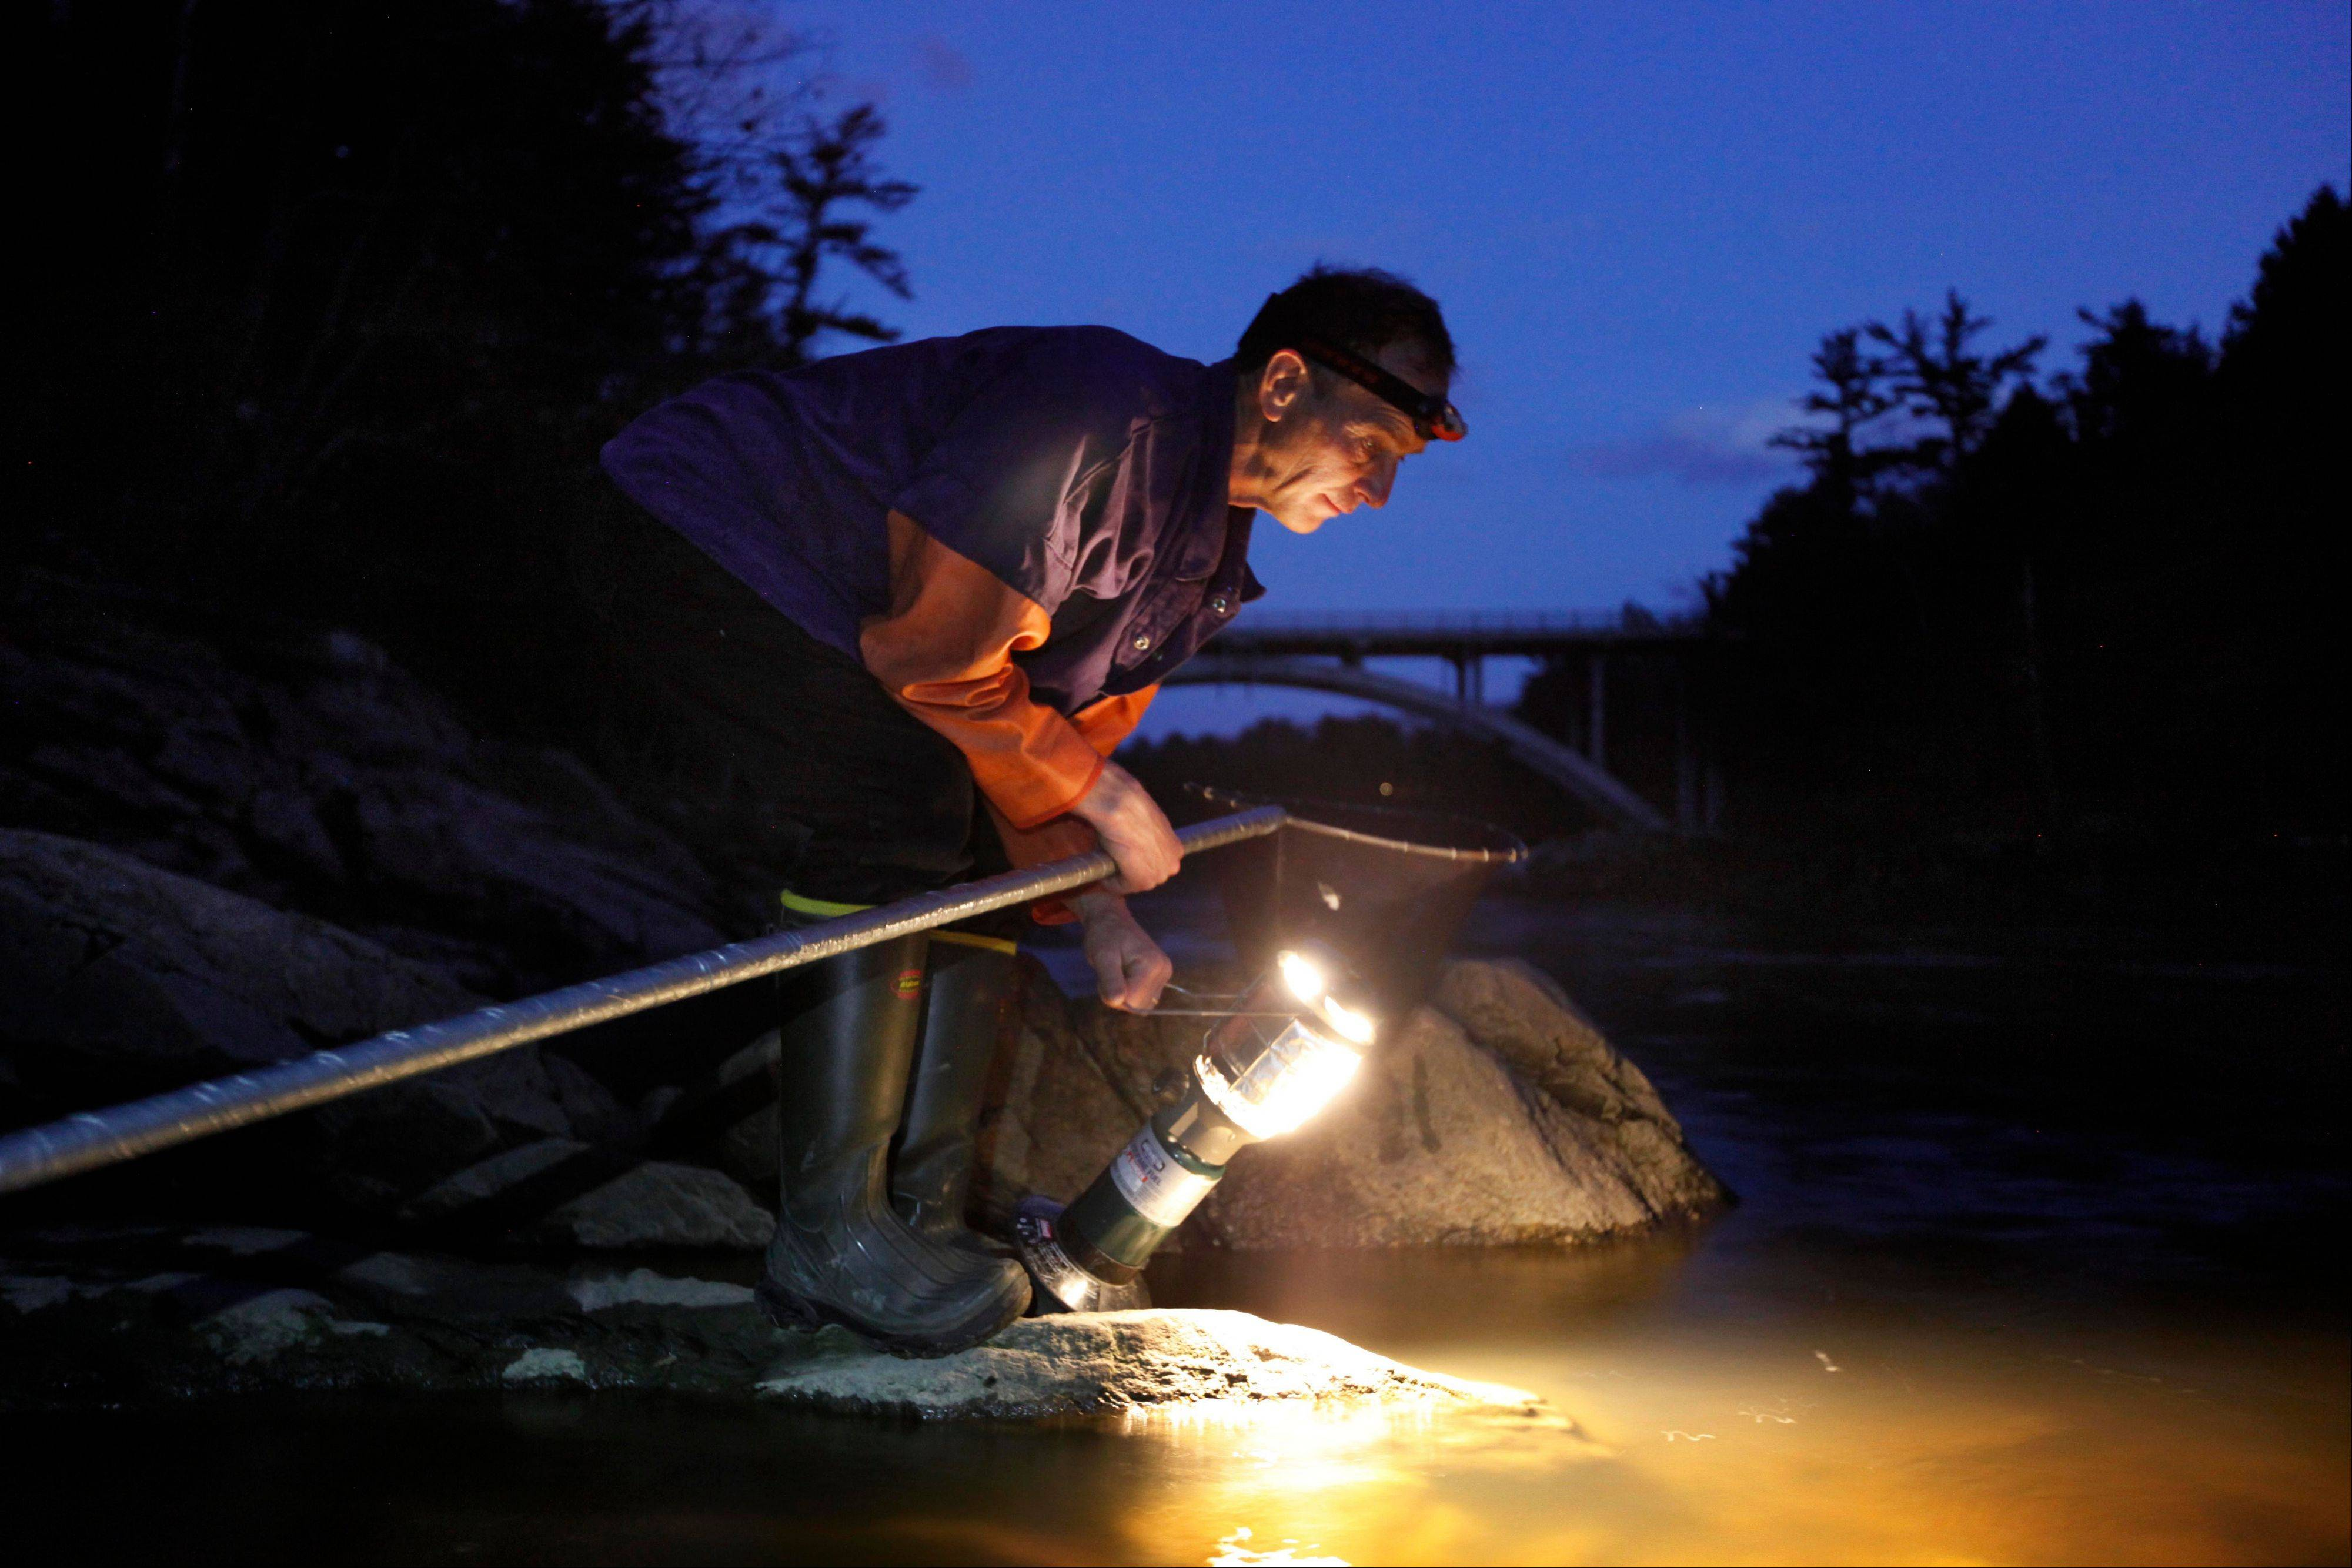 Associated PressBruce Steeves uses a lantern while dip netting for elvers on a river in southern Maine. The price of the eels has skyrocketed to unparalleled levels, with catches bringing up to $2,000 a pound.